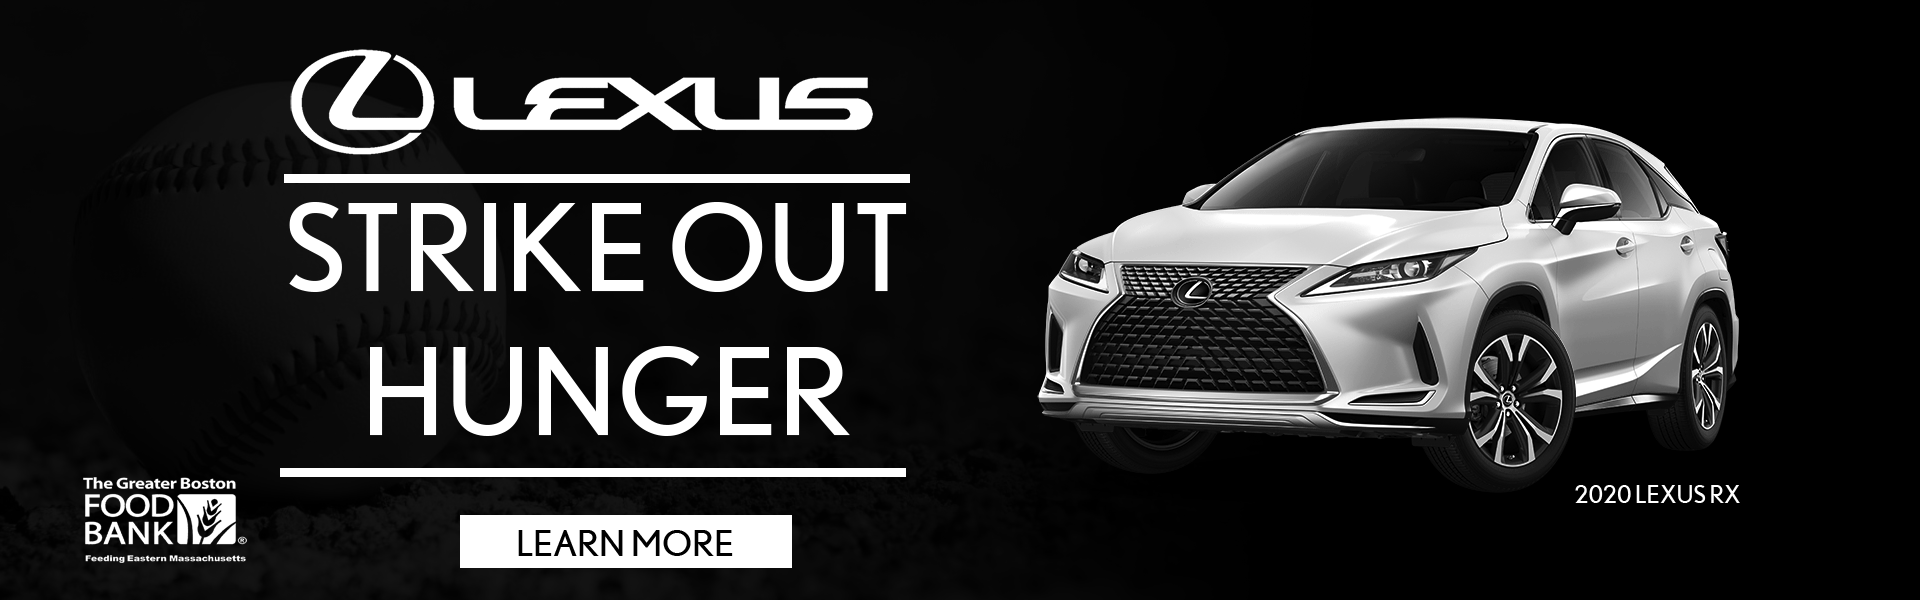 Lexus Strike Out Hunger